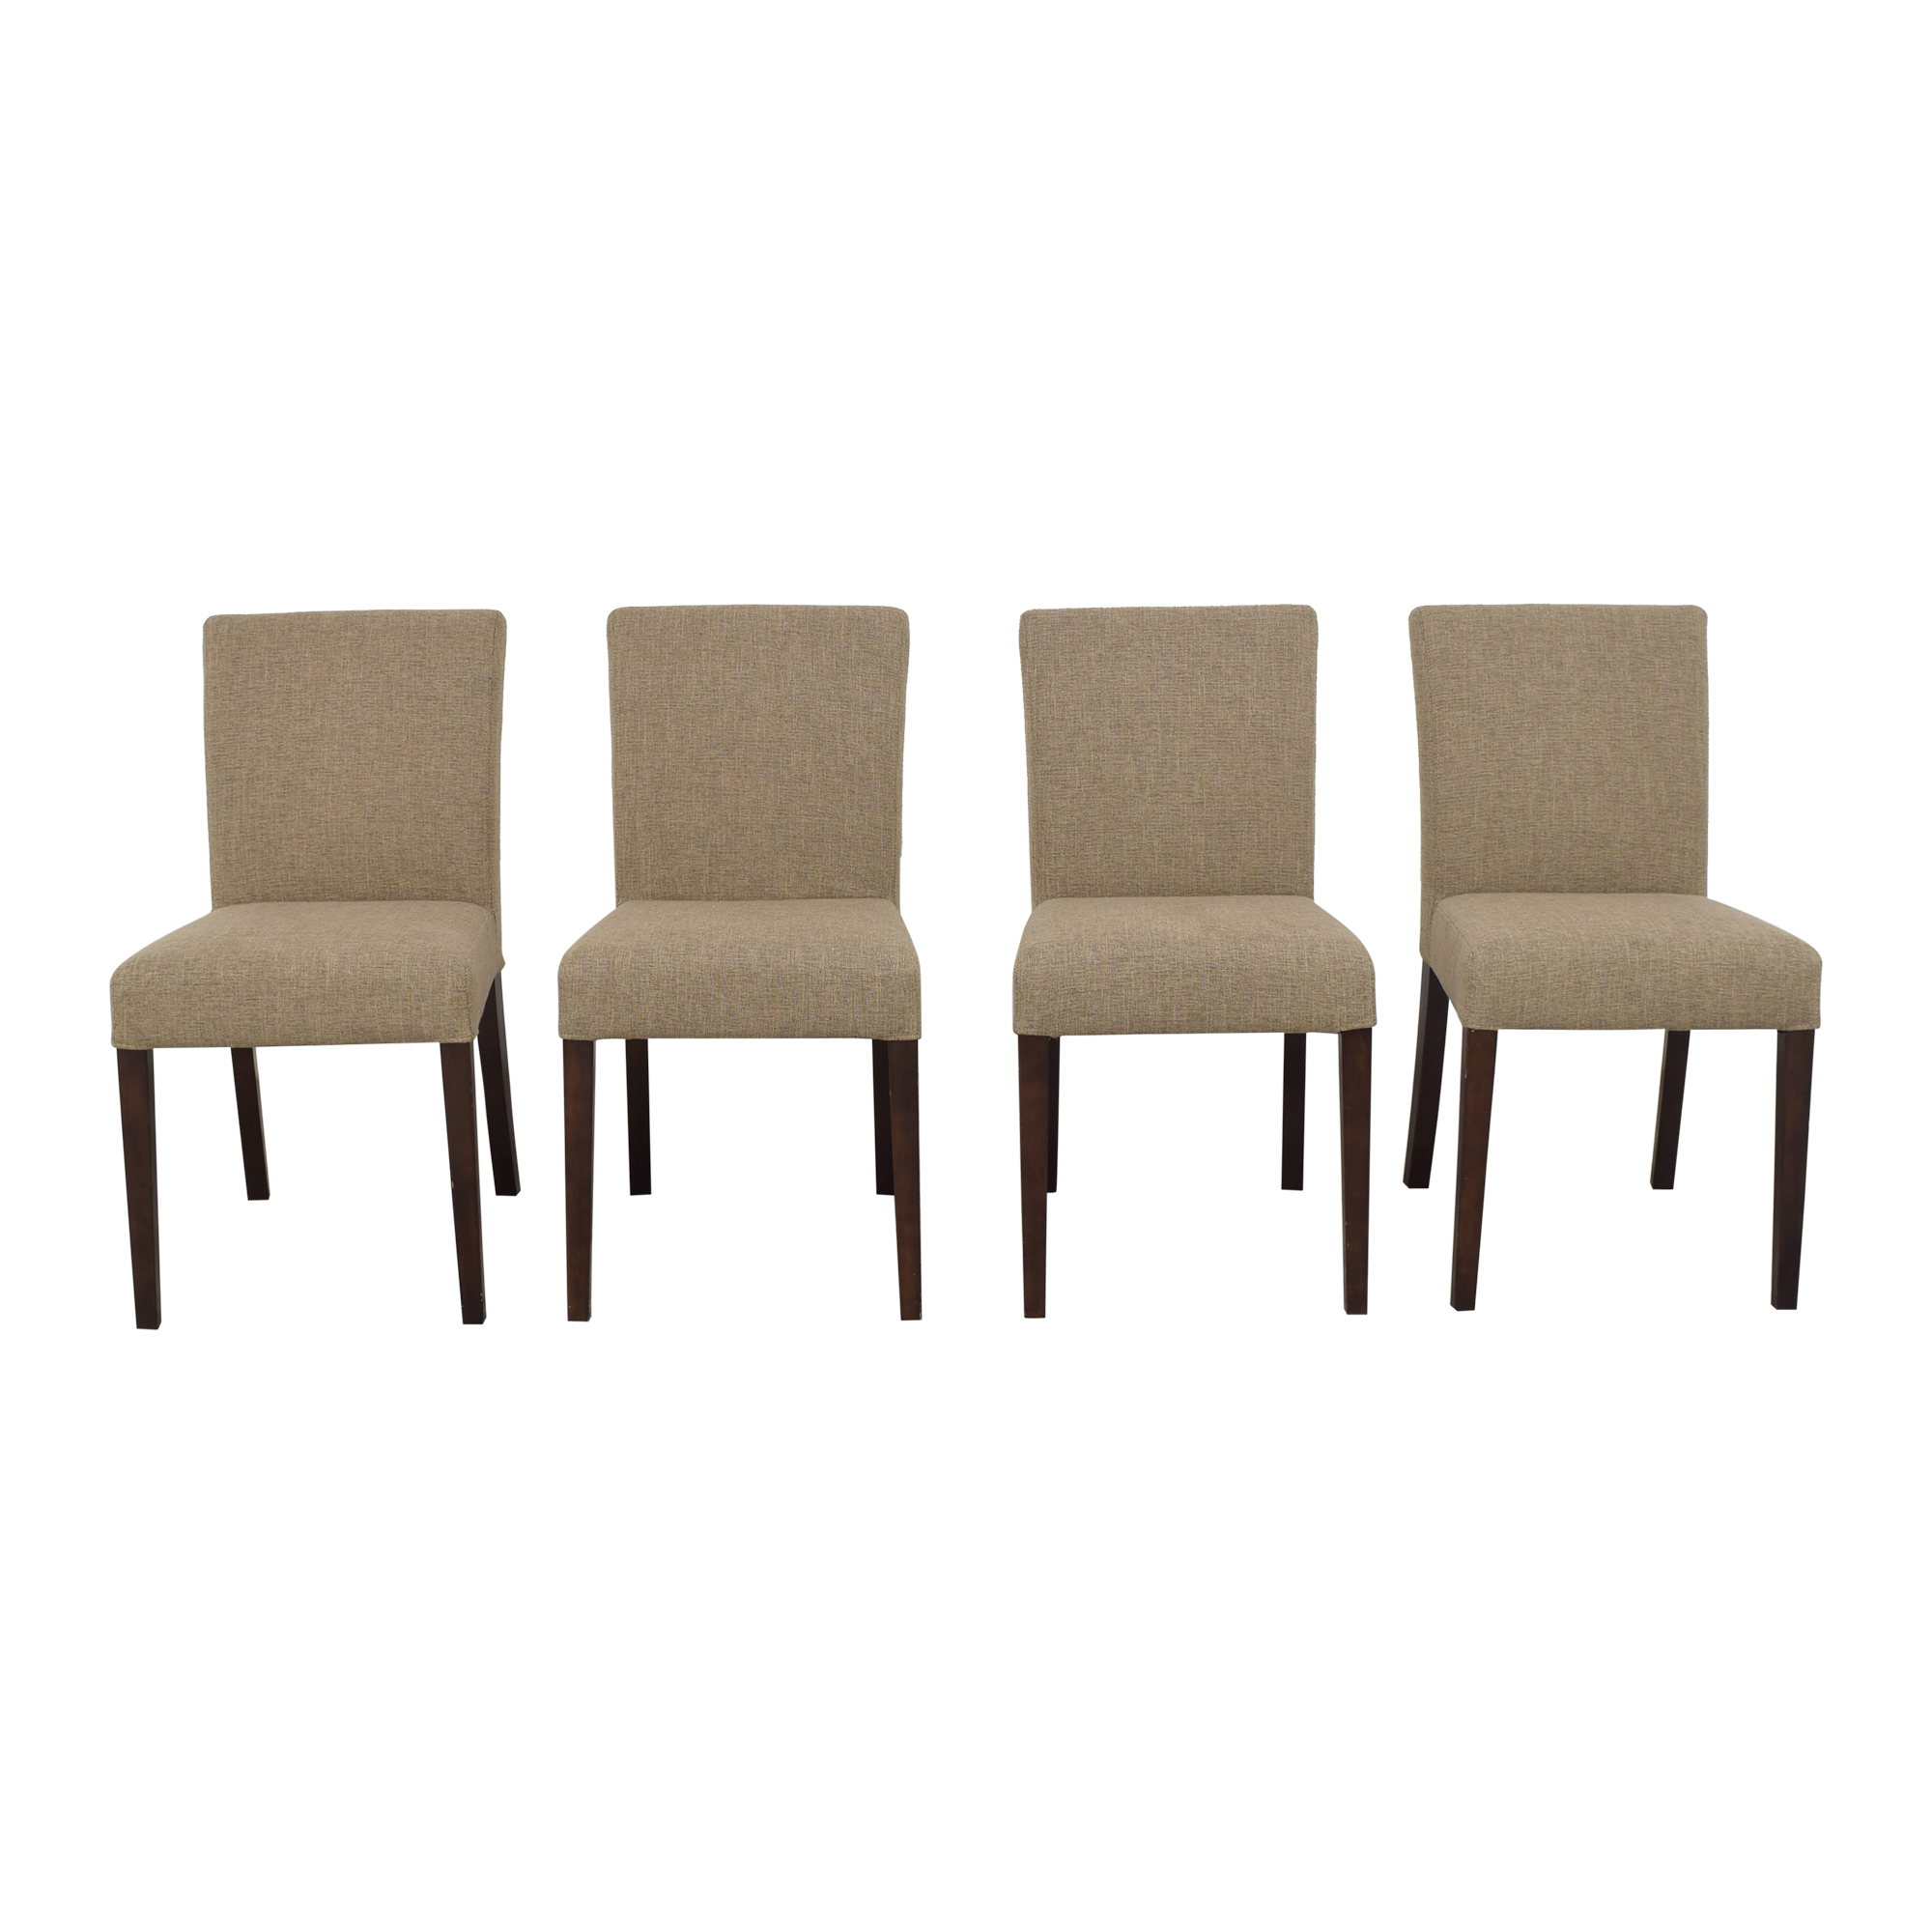 Crate & Barrel Crate & Barrel Lowe Dining Chairs Chairs